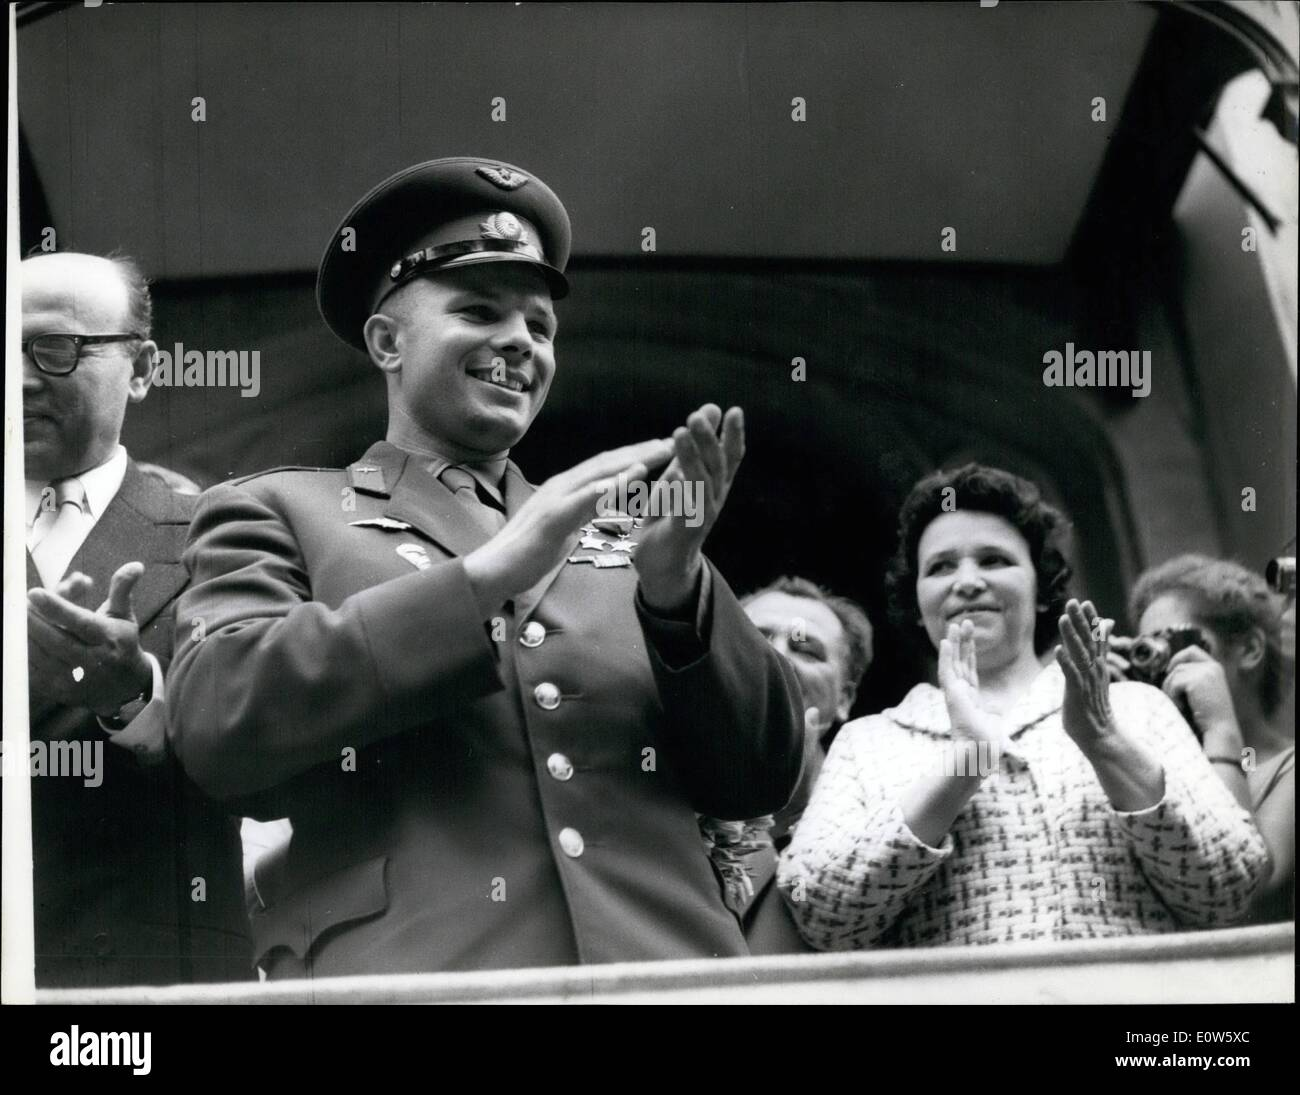 Jul. 07, 1961 - Yuri Gagarin in London for Russian Trade Fair. The Soviet spaceman, Yuri Gagarin, arrived in London yesterday for a three-day visit. Thousands of Londoners turned out to welcome him. Gagarin is here to attend the Russian Trade Fair now being held at Earl's Court. Photo Shows: Gagarin clapping hands while standing on the balcony of the Russian Embassy in Kensington Palace Gardens shortly after his arrival yesterday. Keystone - Stock Image